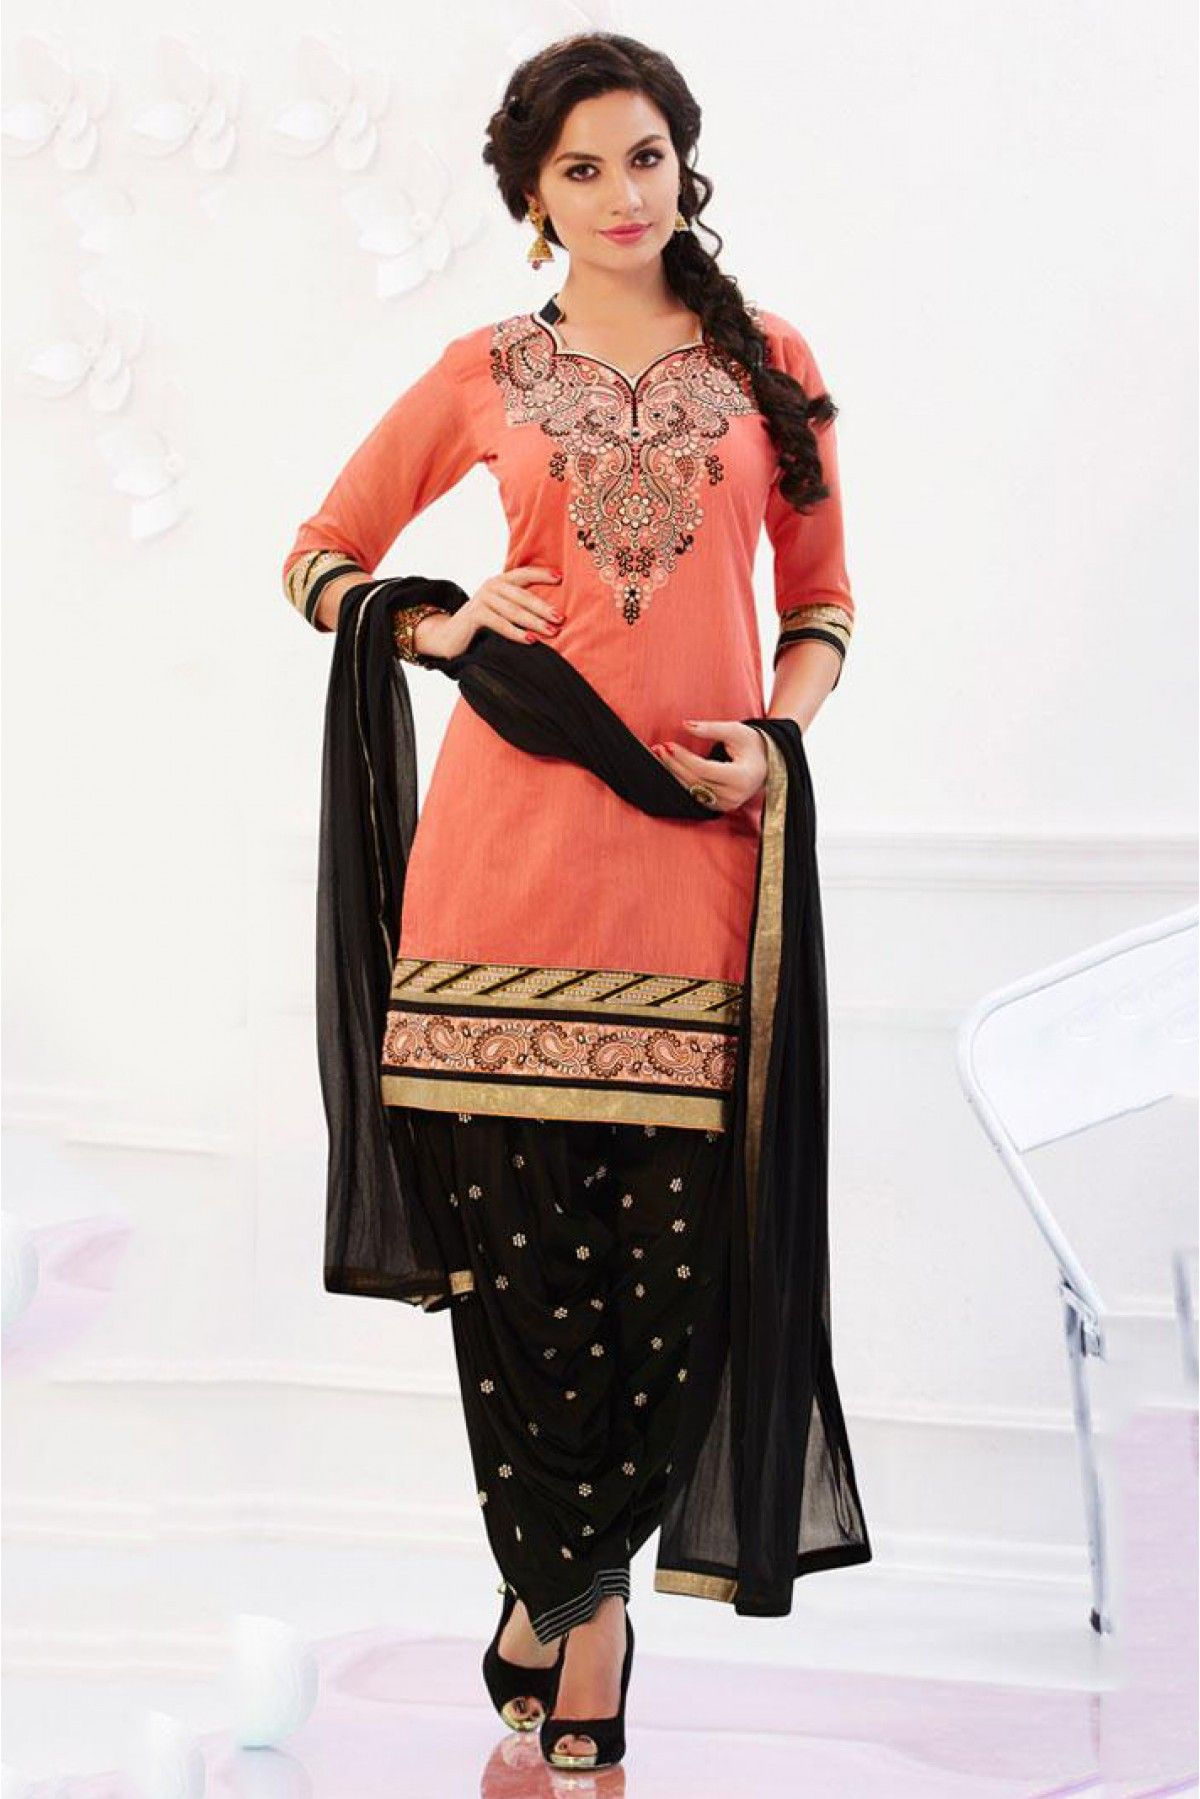 Banarasi Chanderi Unstitched Patiala Suit In Black and Peach ...